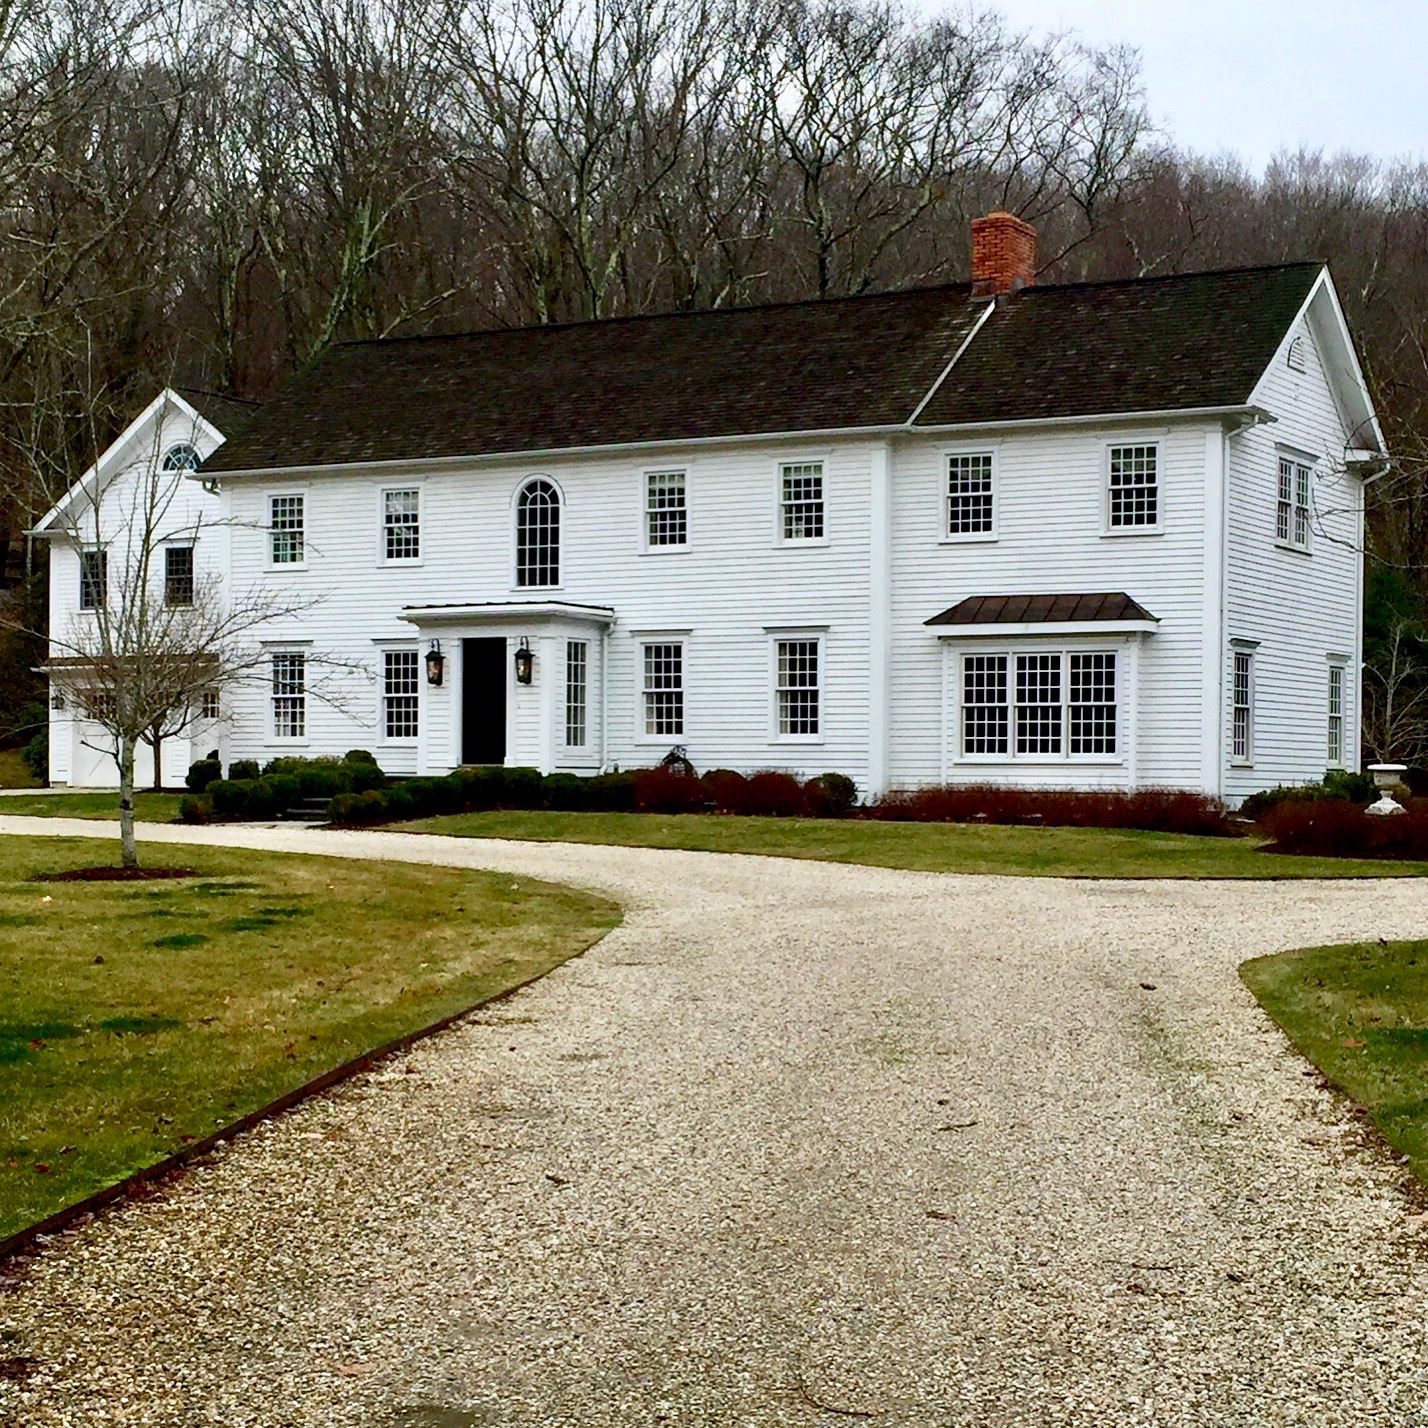 White New England style home 12 over 12 windows portico peastone driveway Newtown CT New England USA .jpg